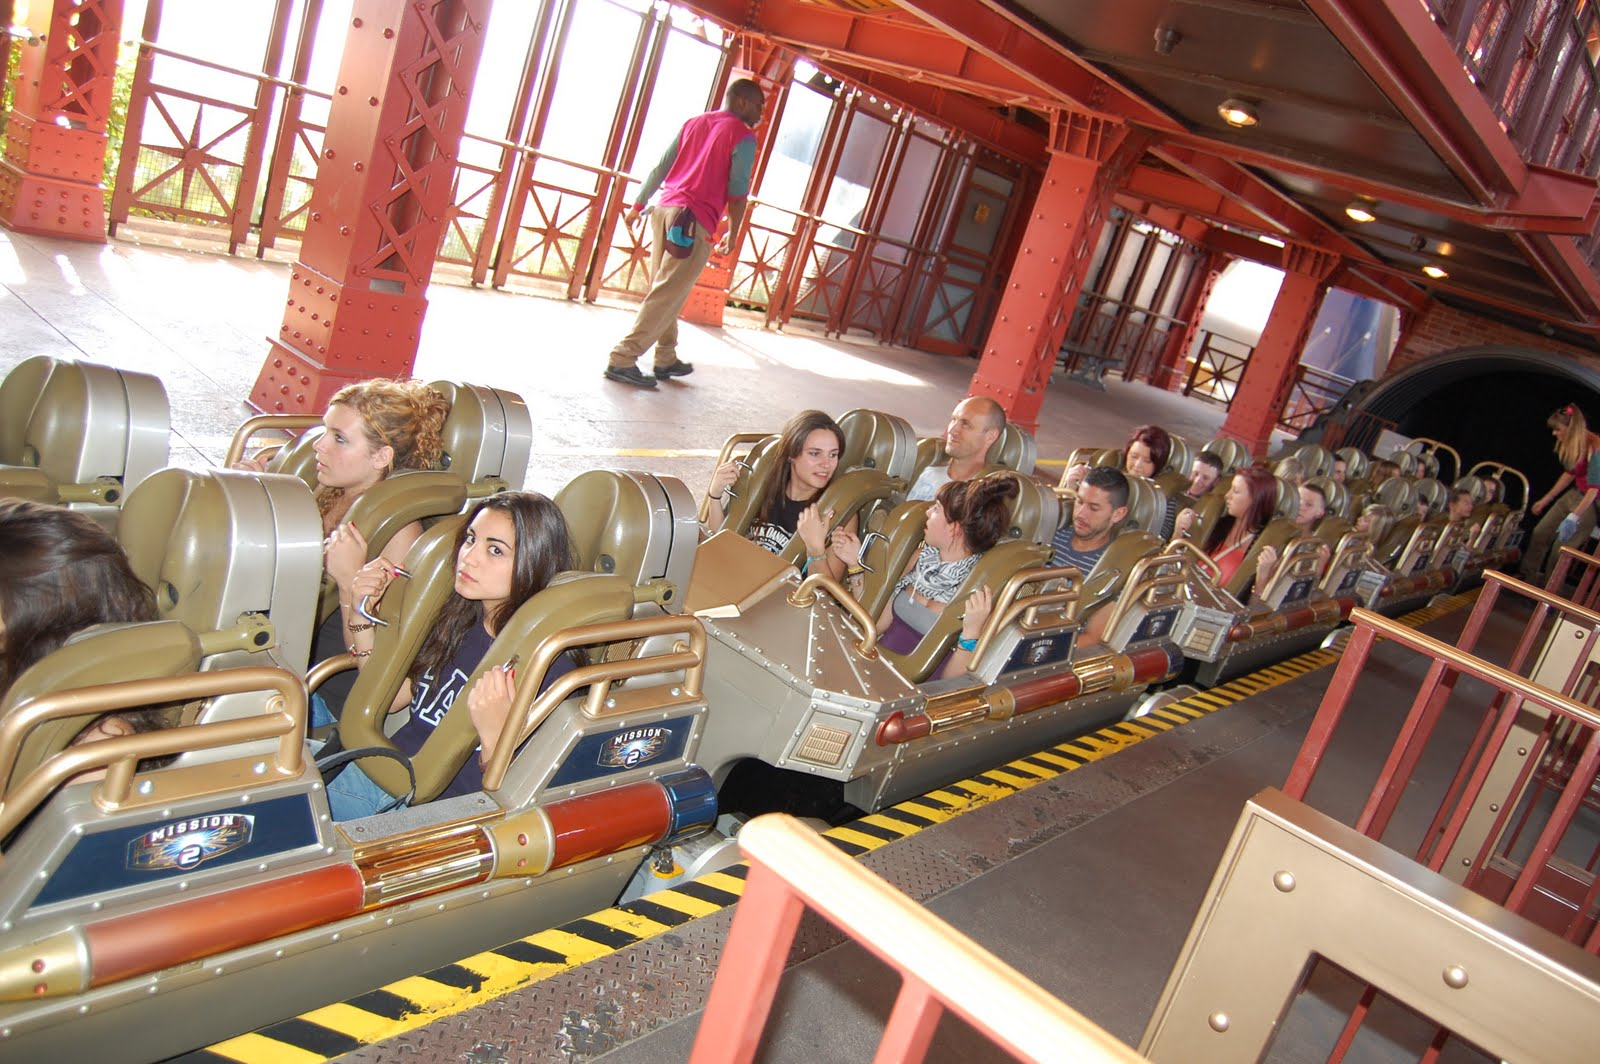 space mountain mission 1 - photo #14